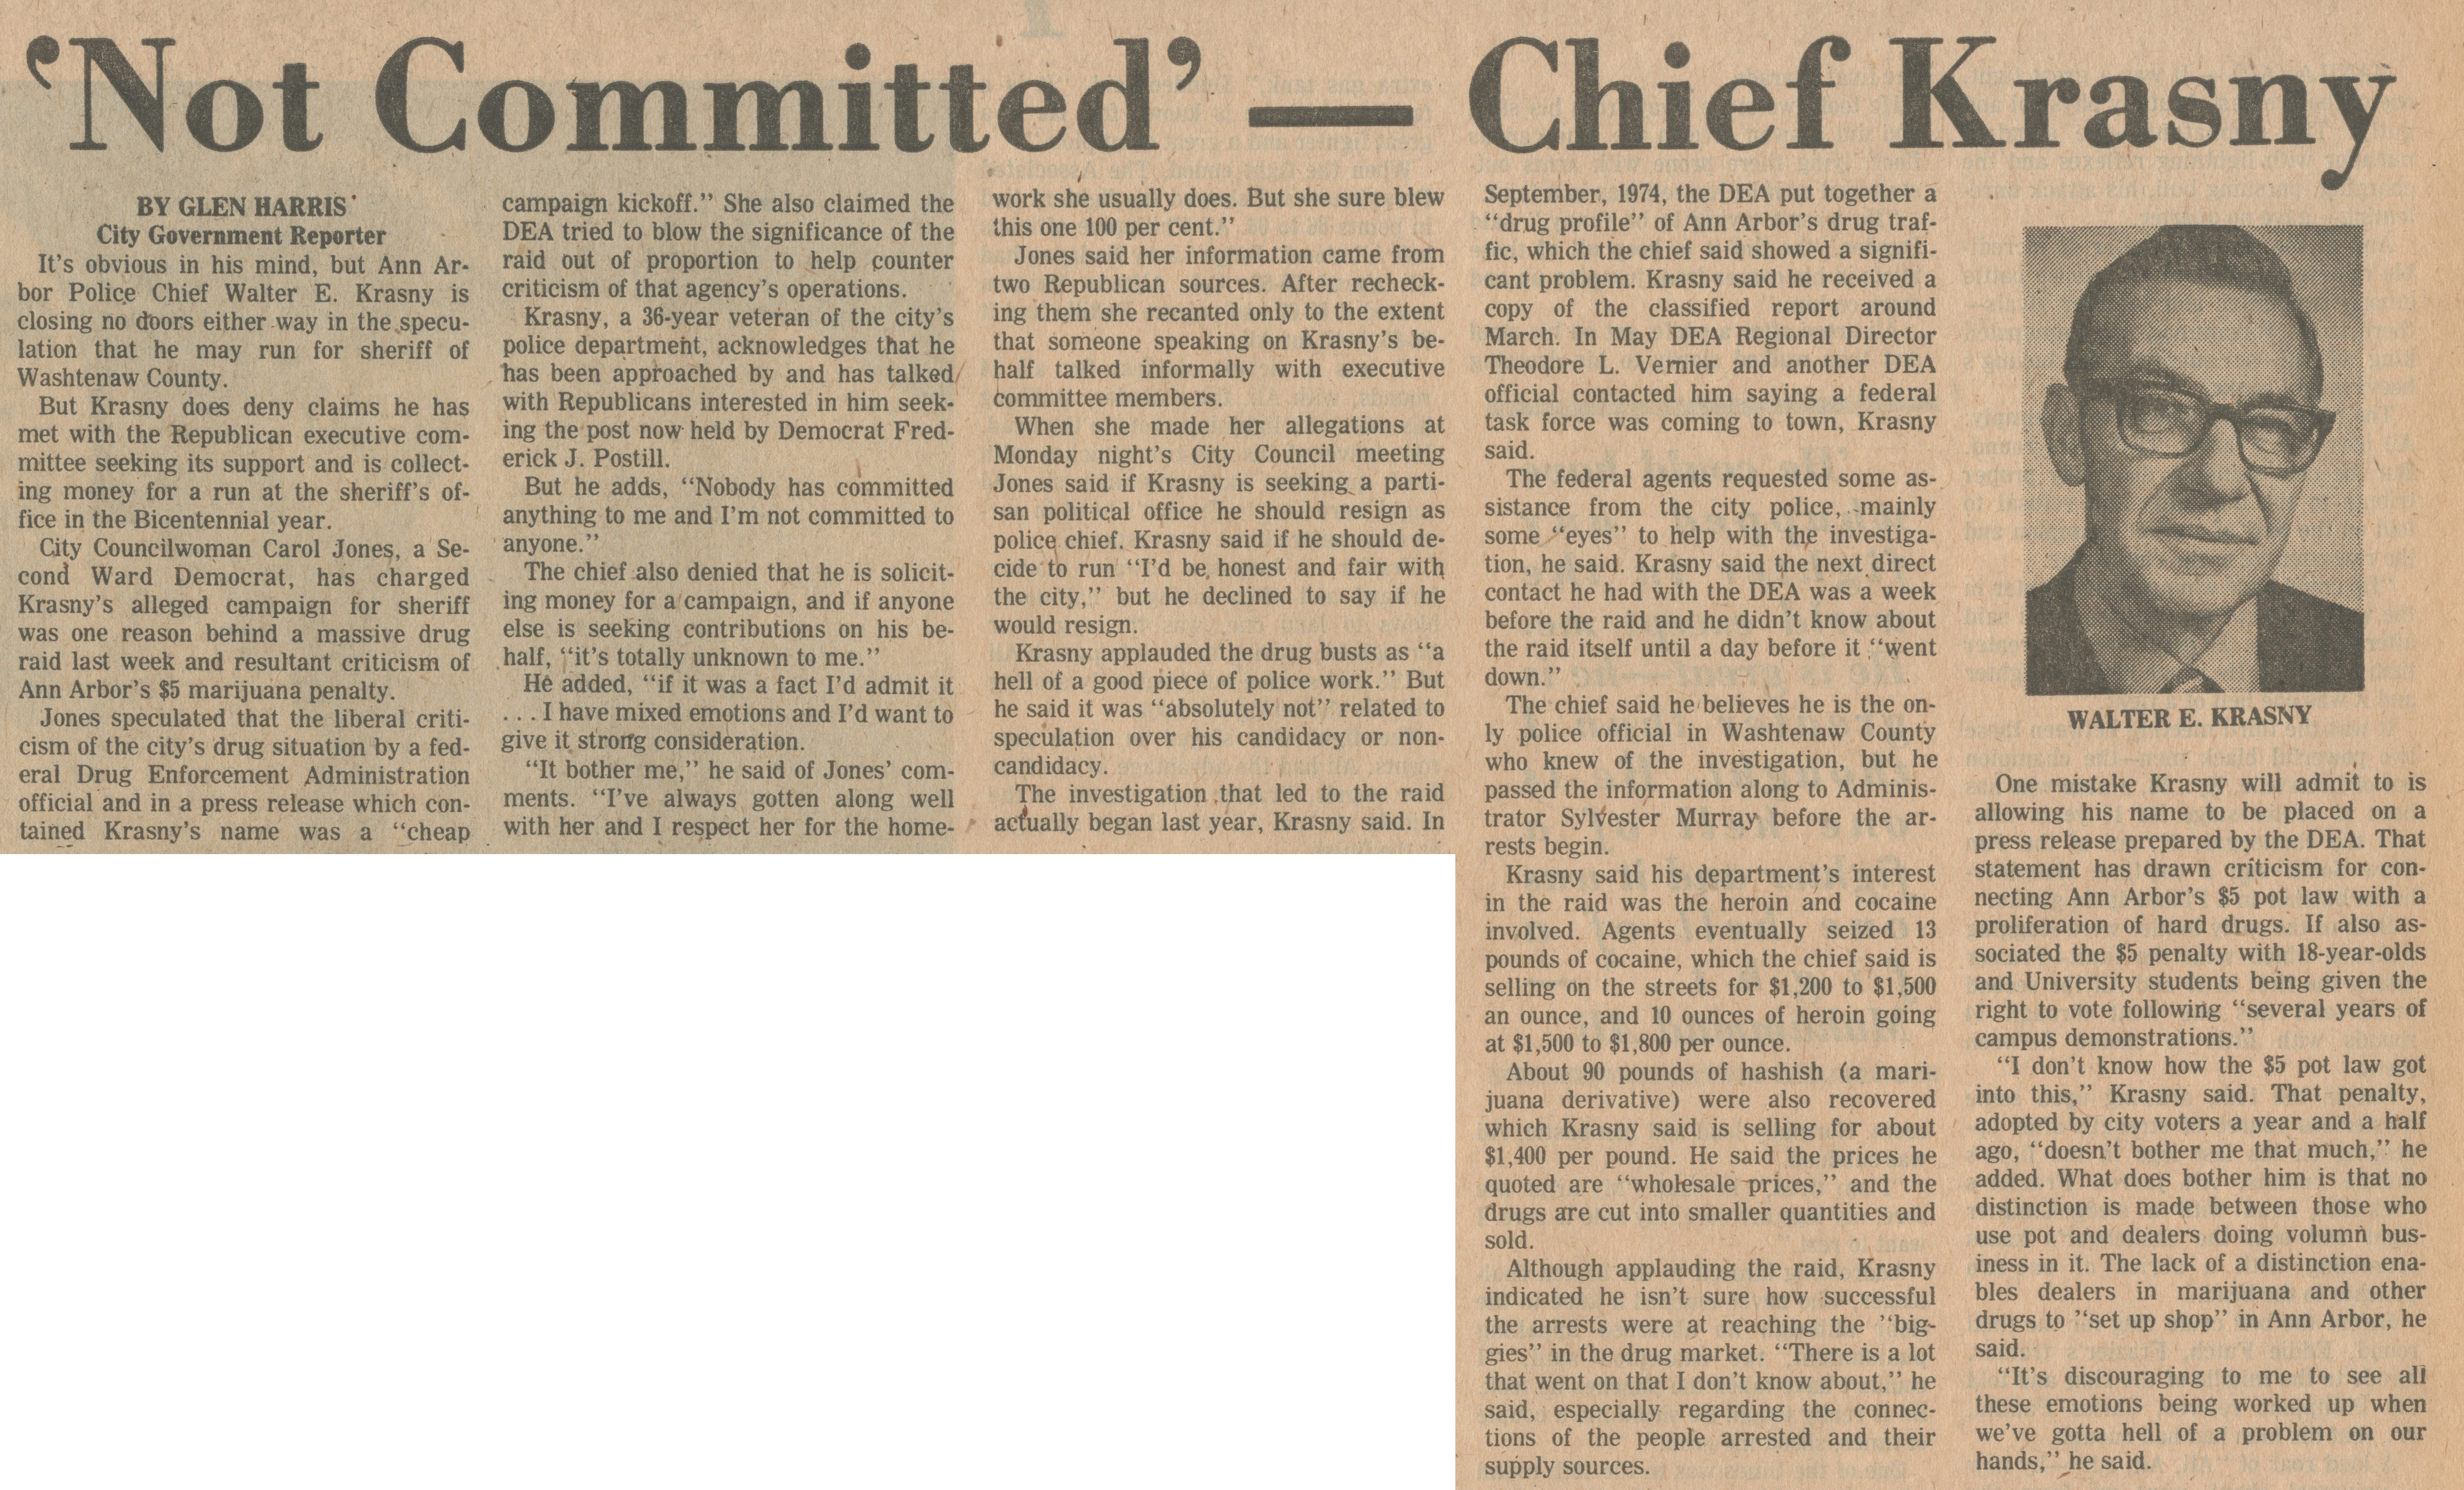 'Not Committed' -- Chief Krasny image